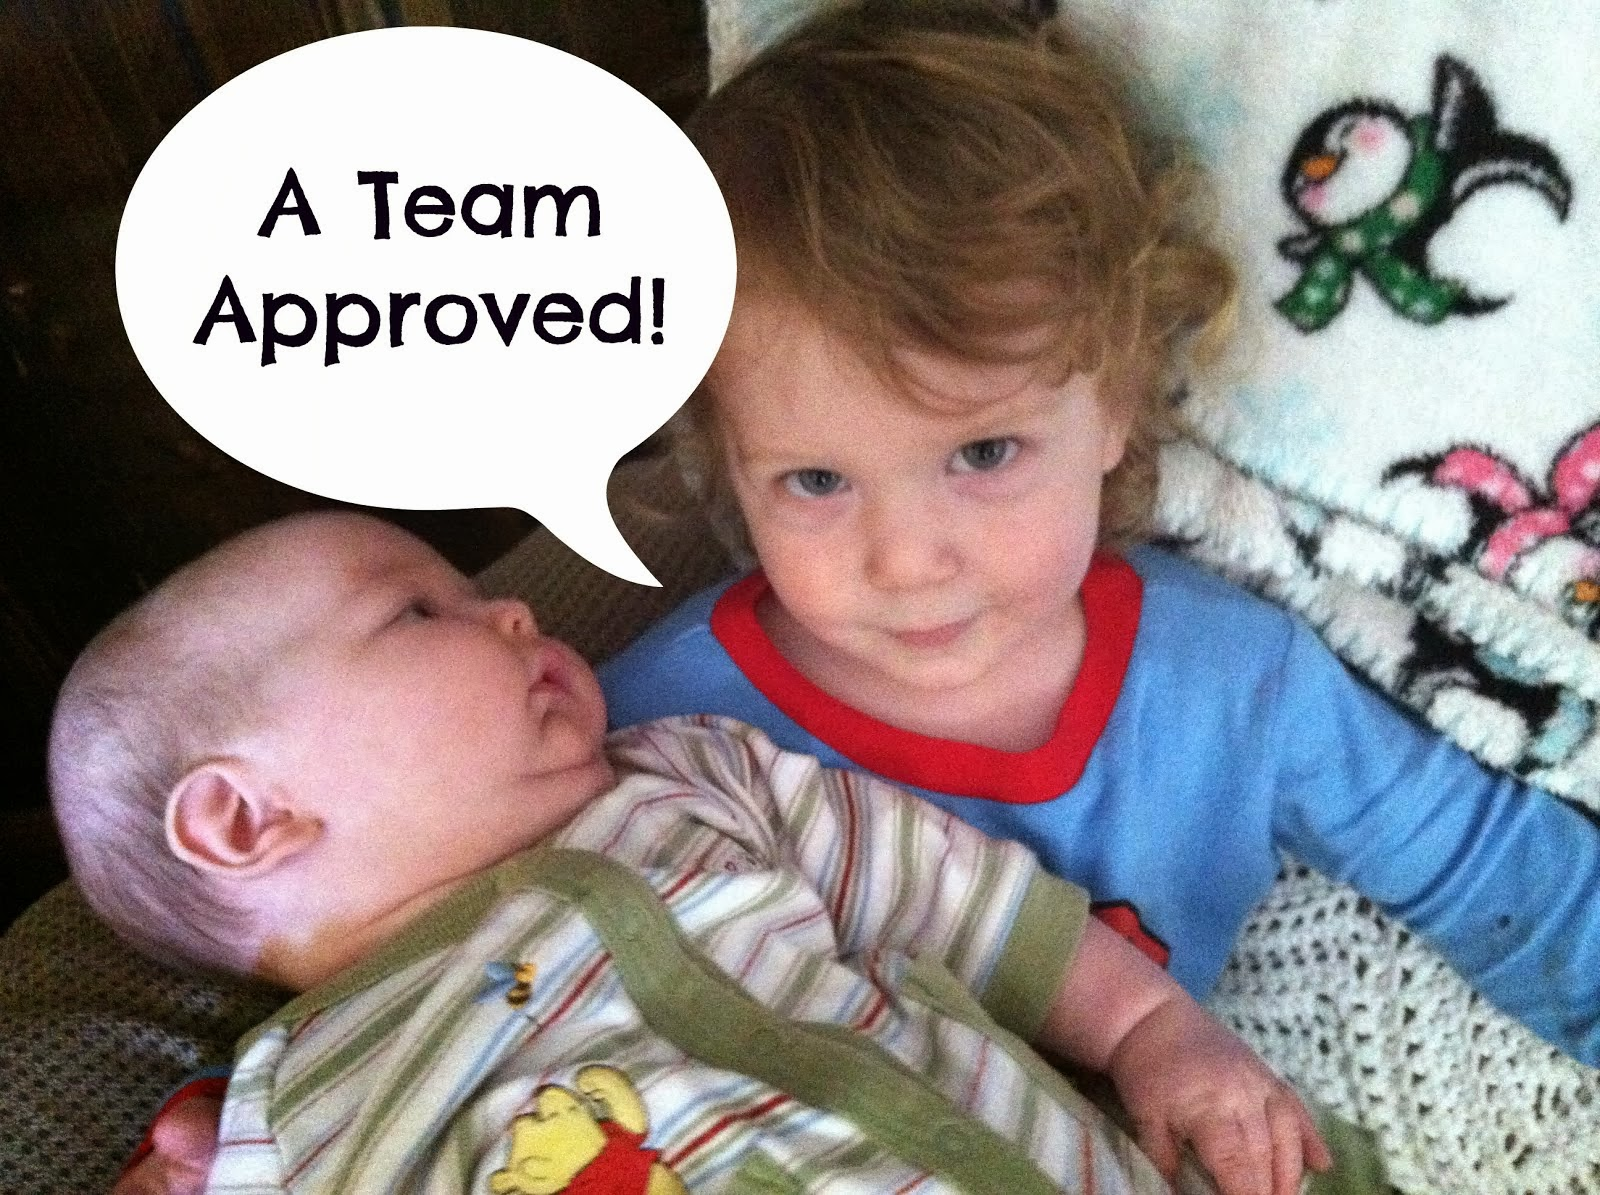 A Team Approved!